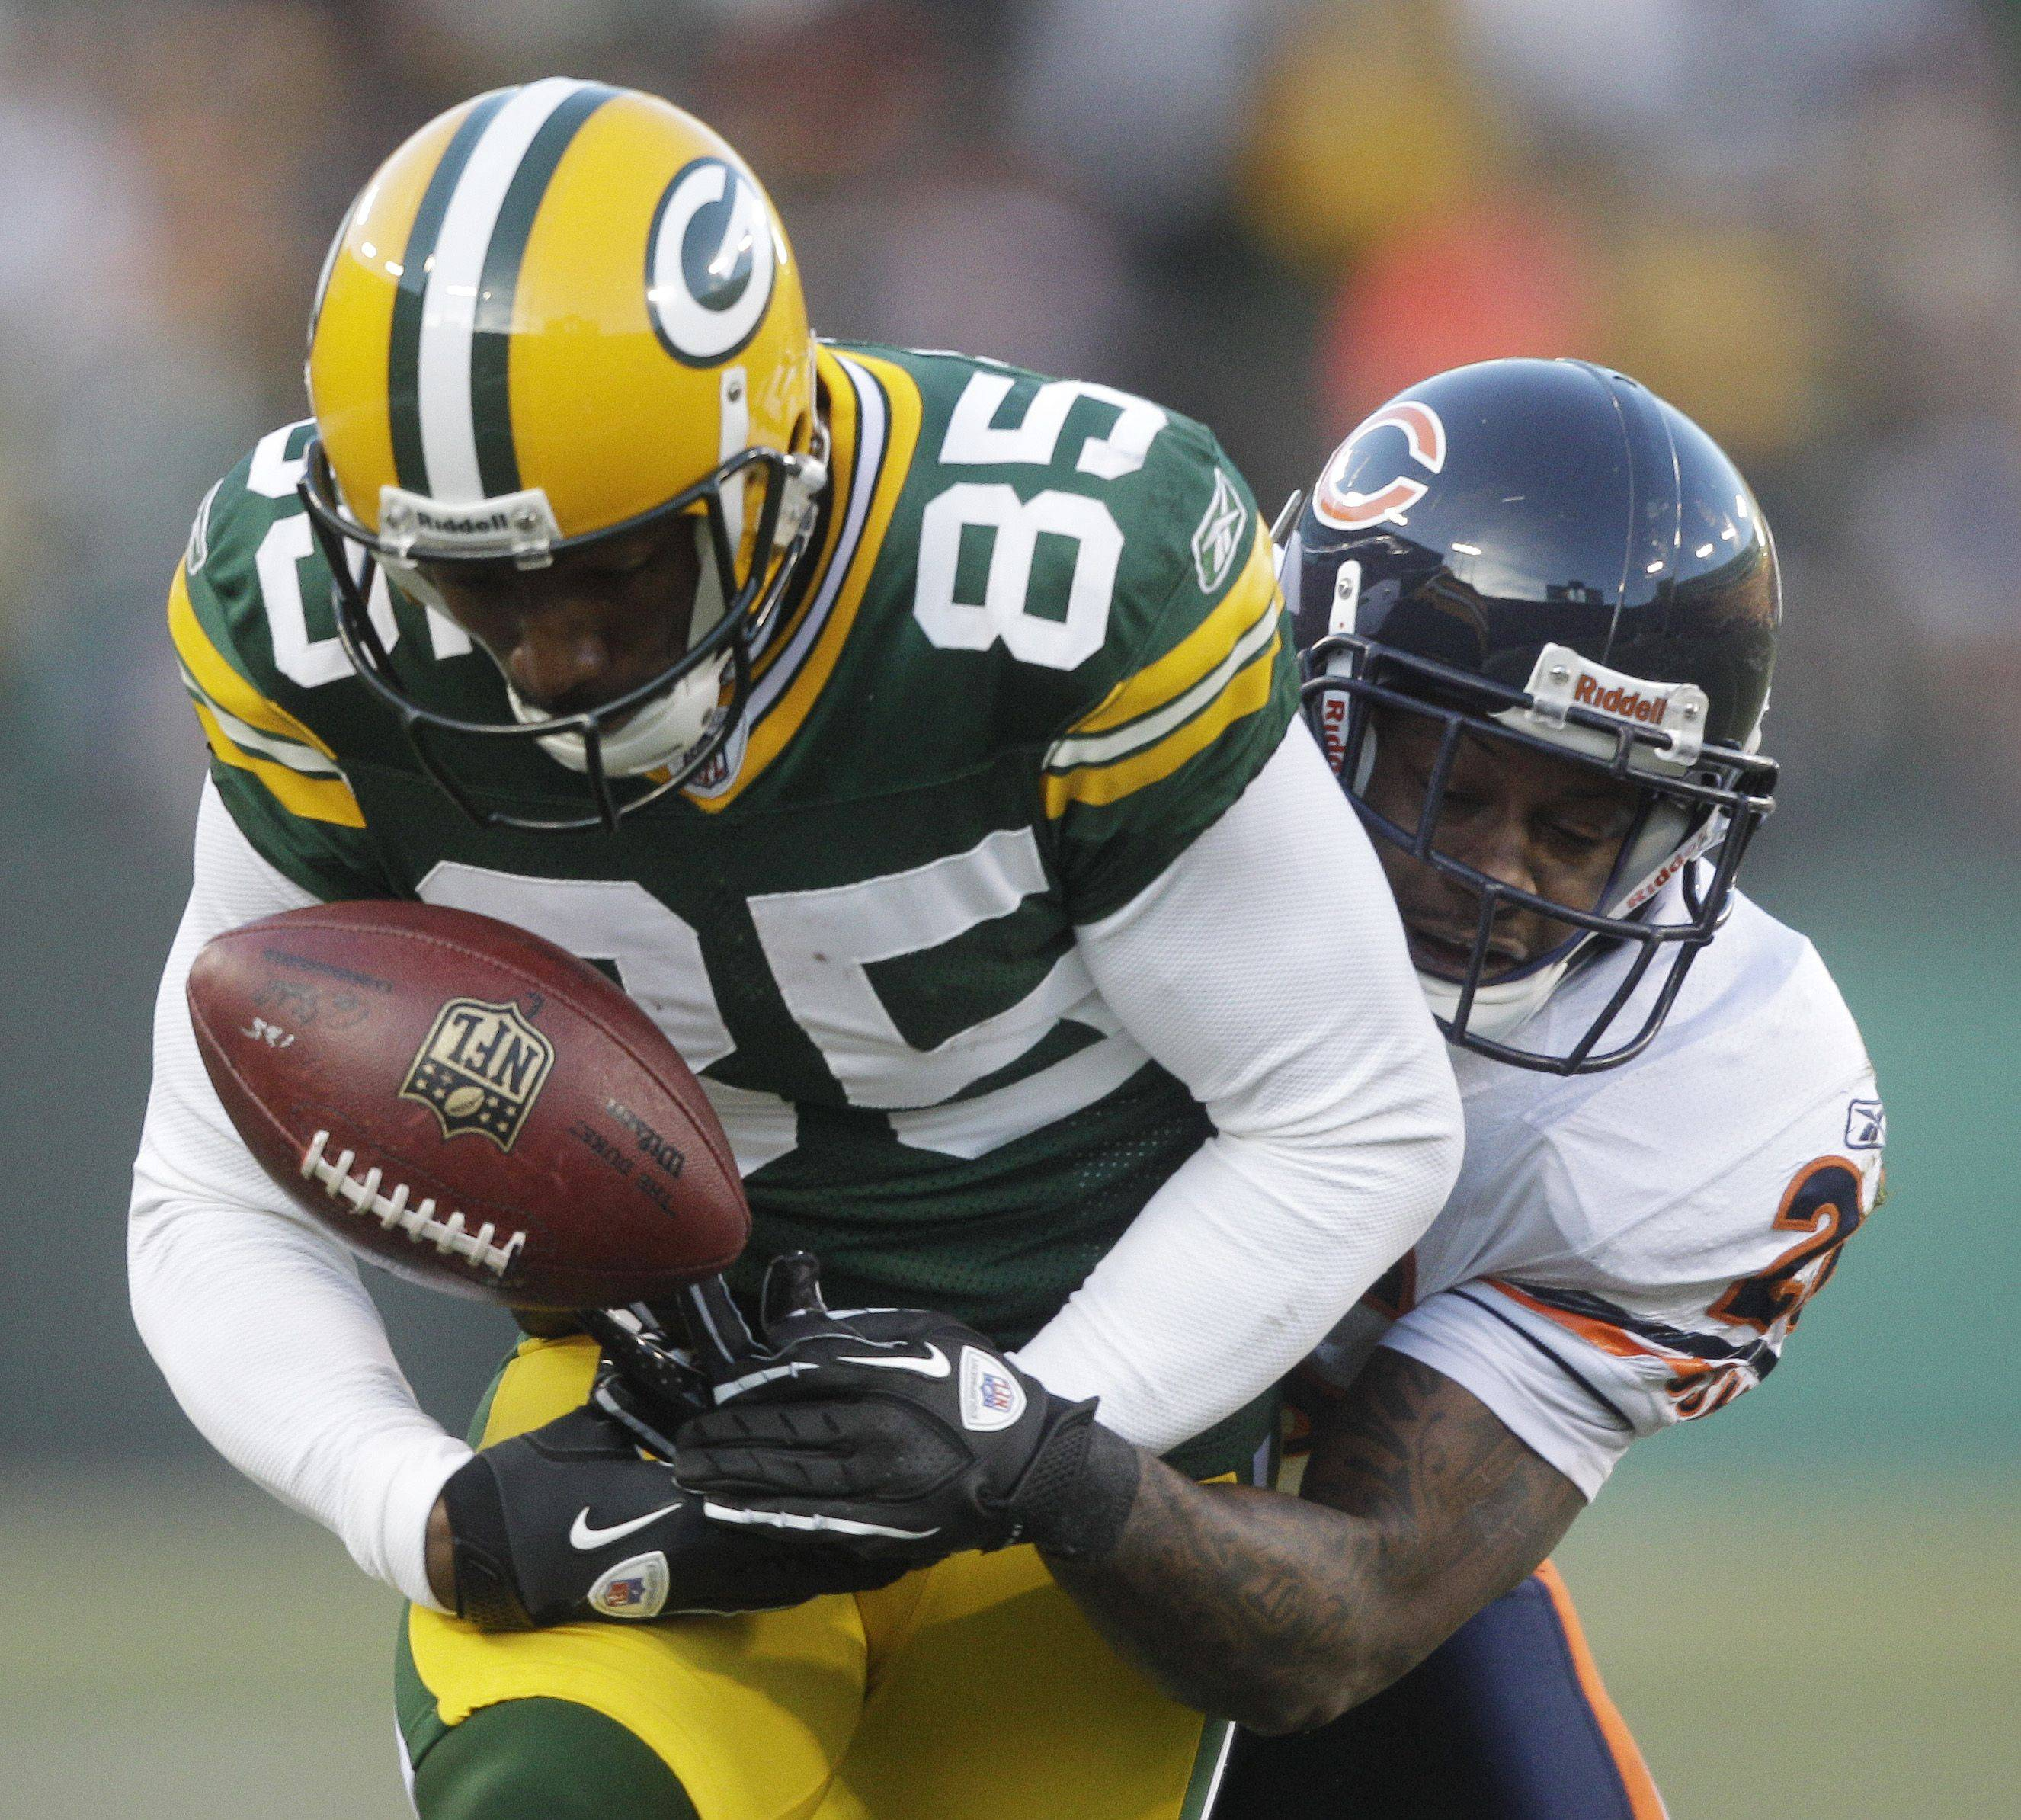 Chicago Bears' Tim Jennings breaks up a pass intended for Green Bay Packers' Greg Jennings during the first half.